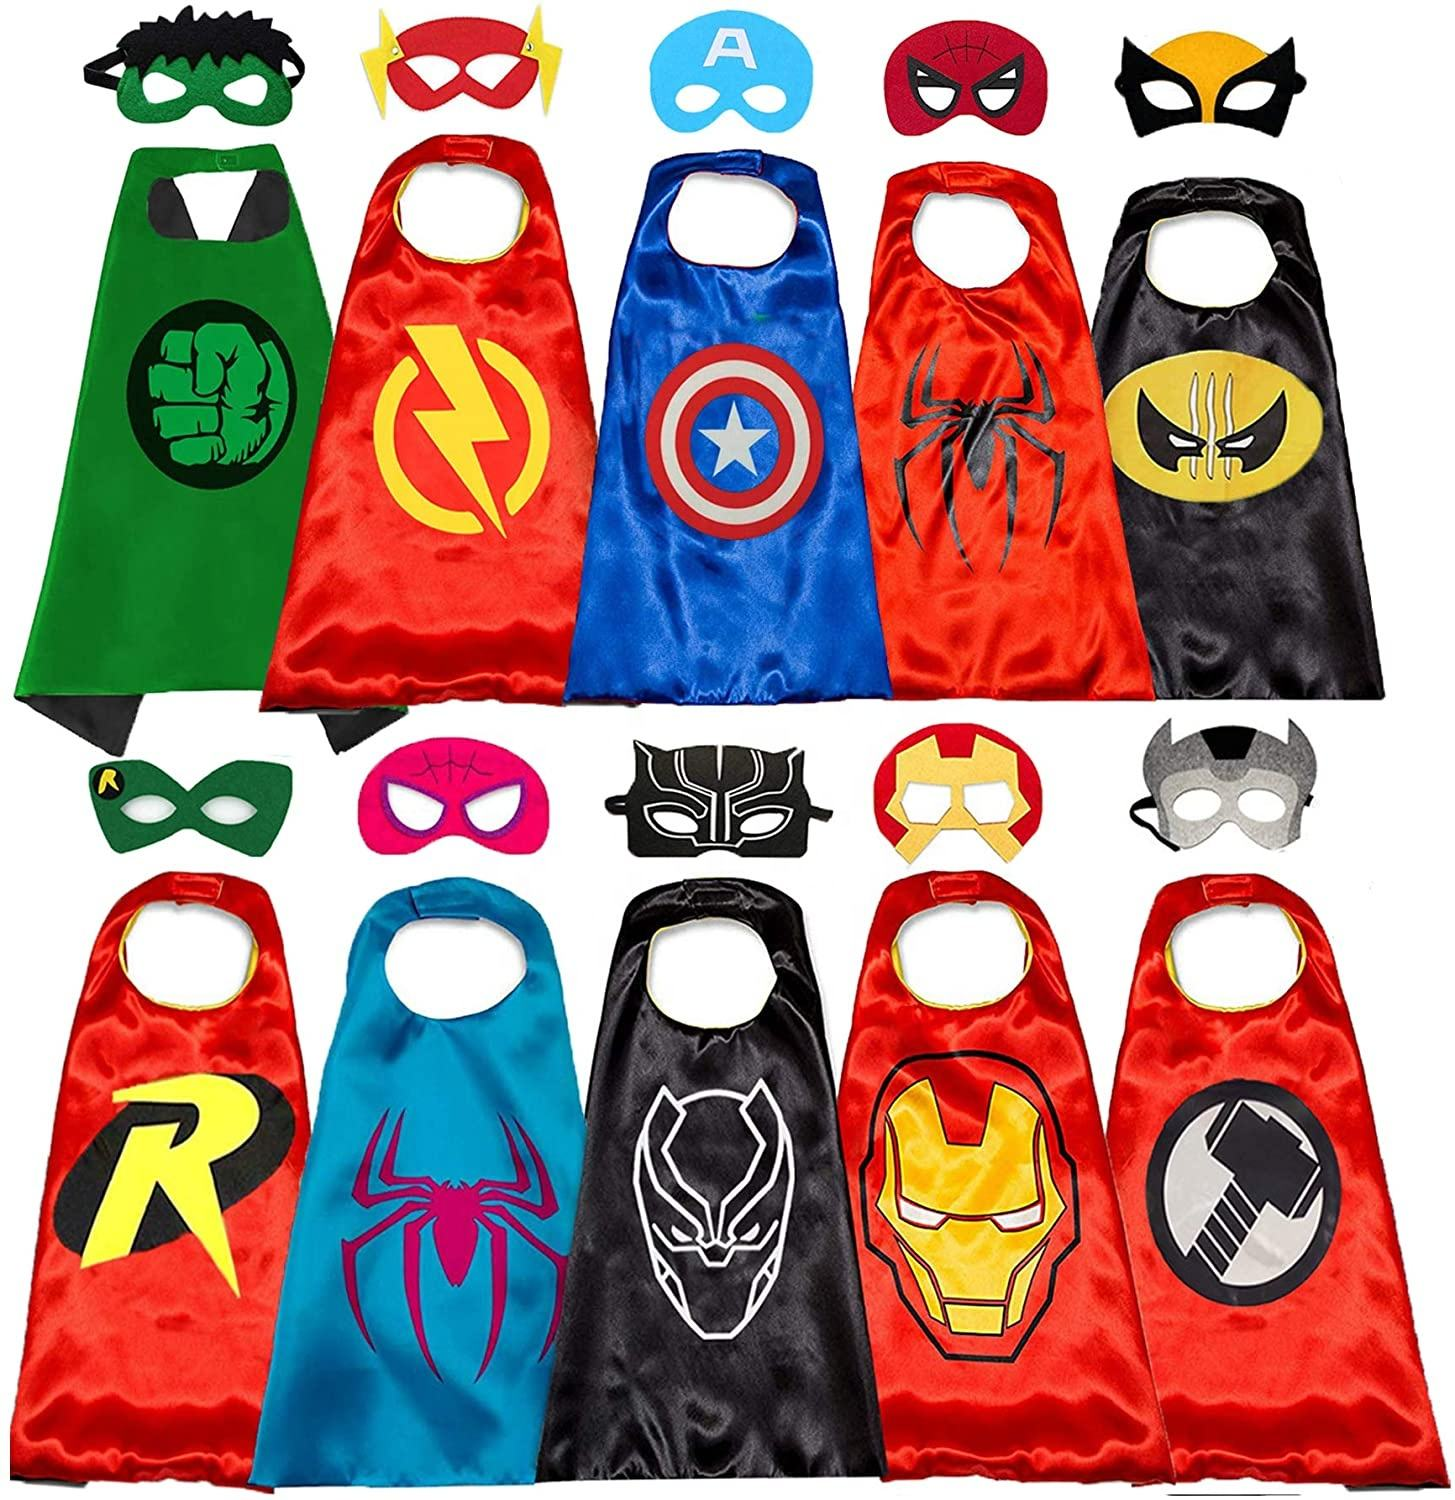 Cape de super-héros en vogue Amazon, Costume Cosplay pour enfants, OEM, nouvelle collection